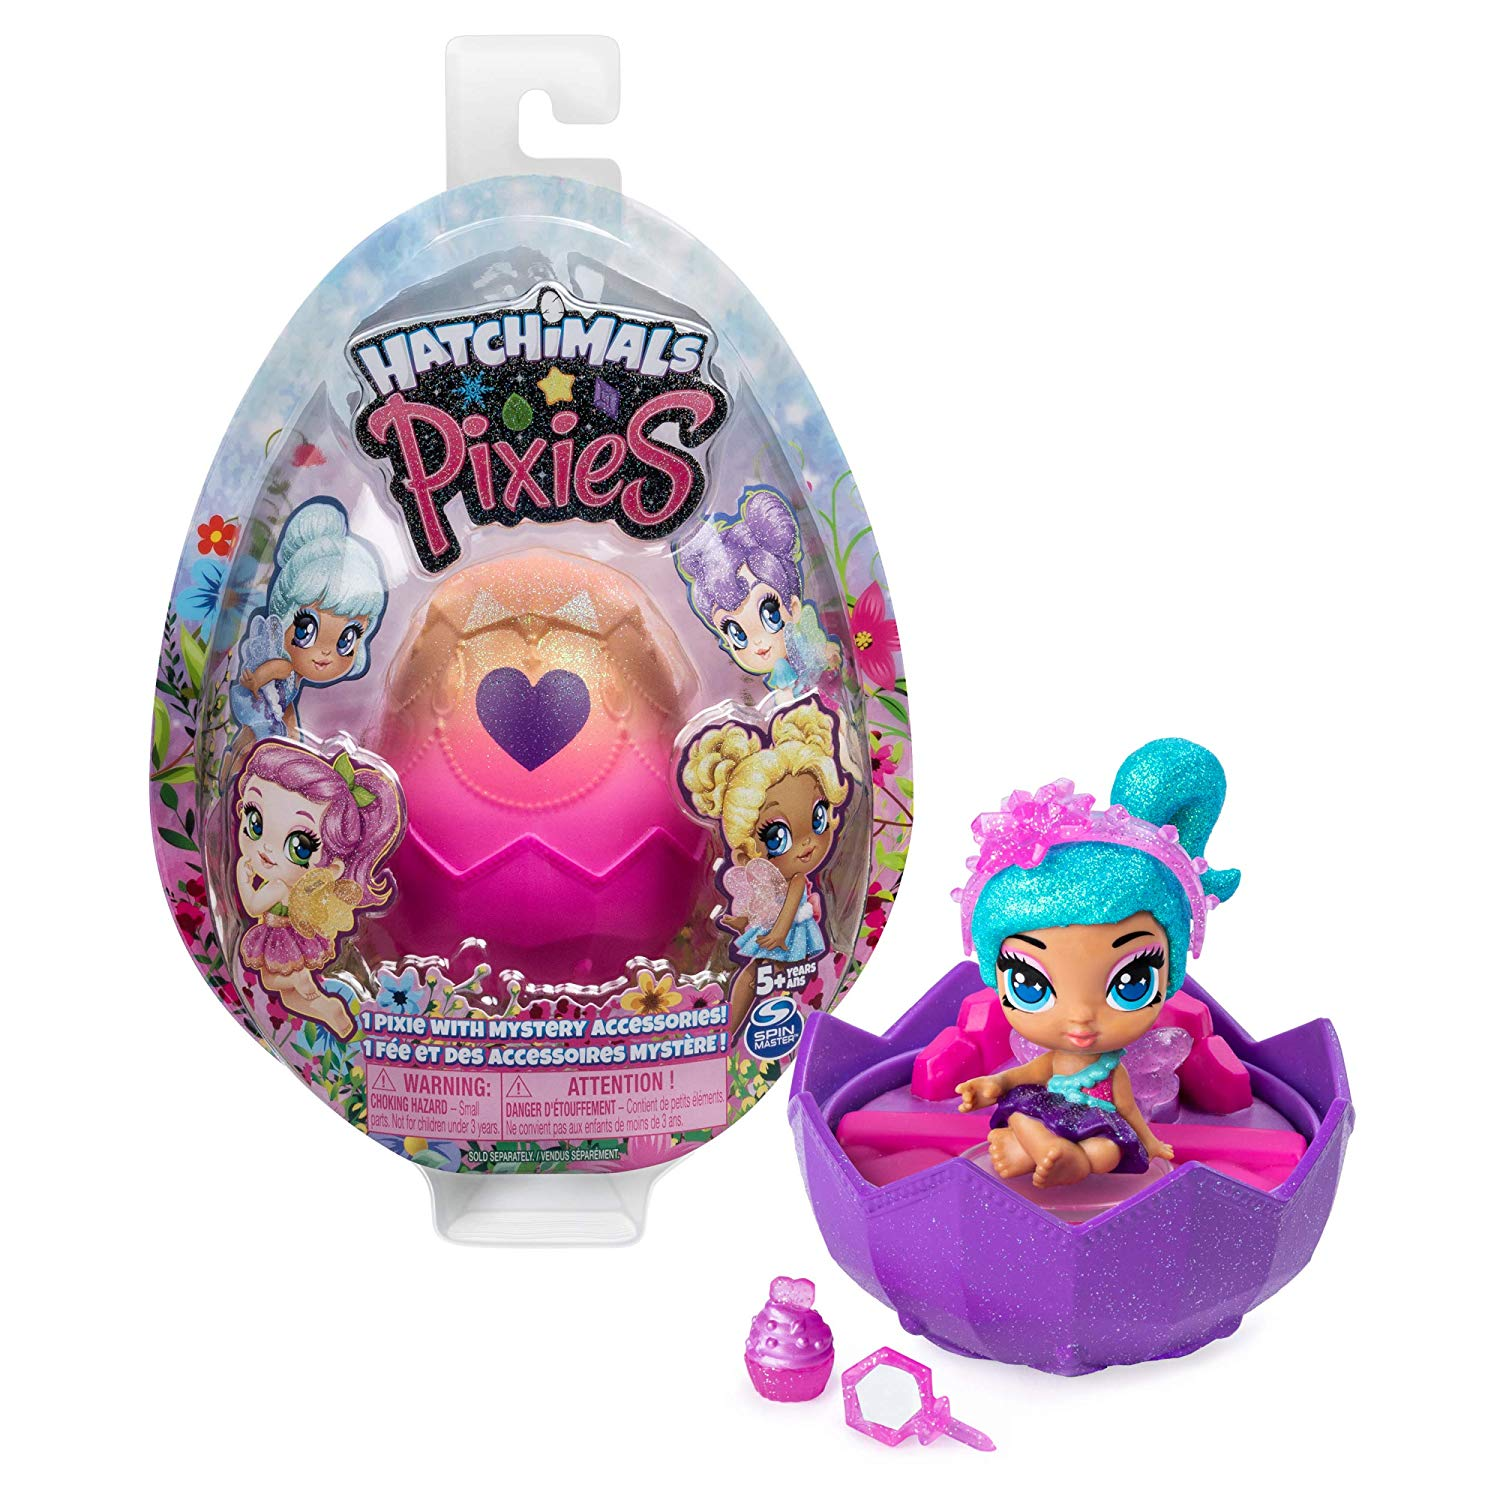 Best New Toys 2020: Hatchimals Pixies 2020